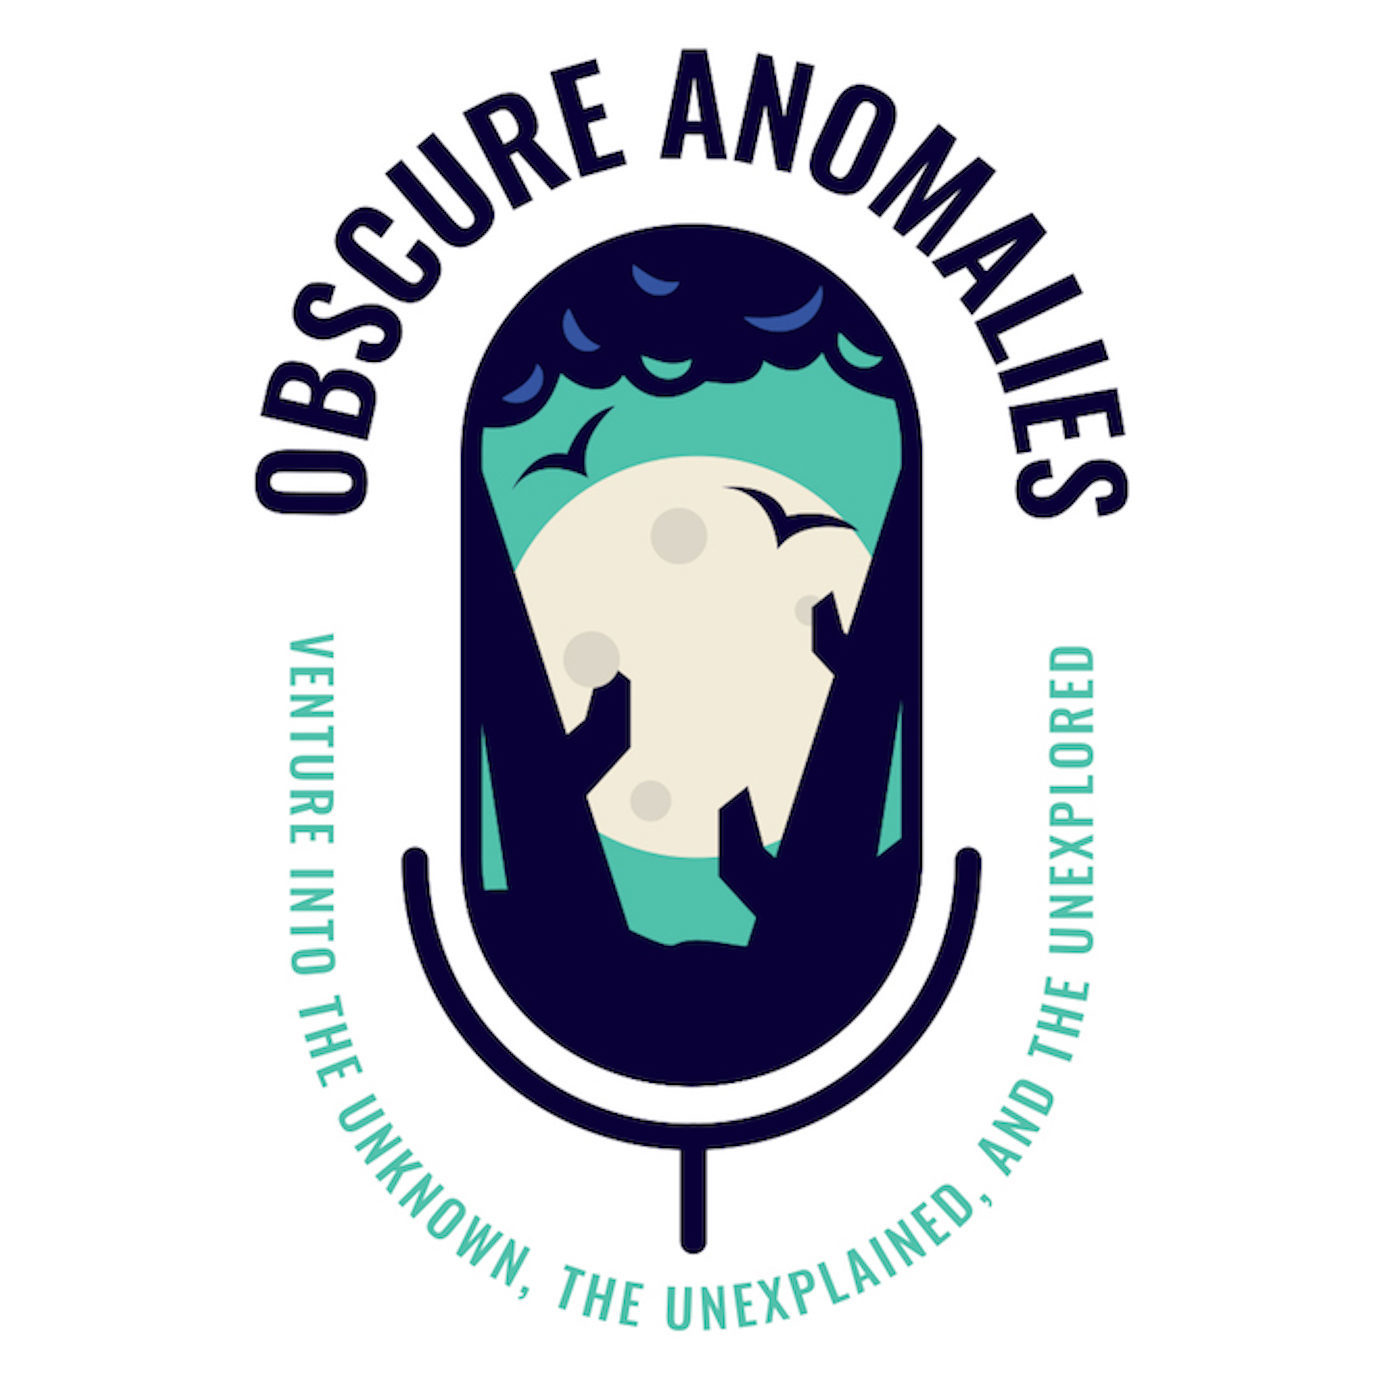 Obscure Anomalies Mic Logo